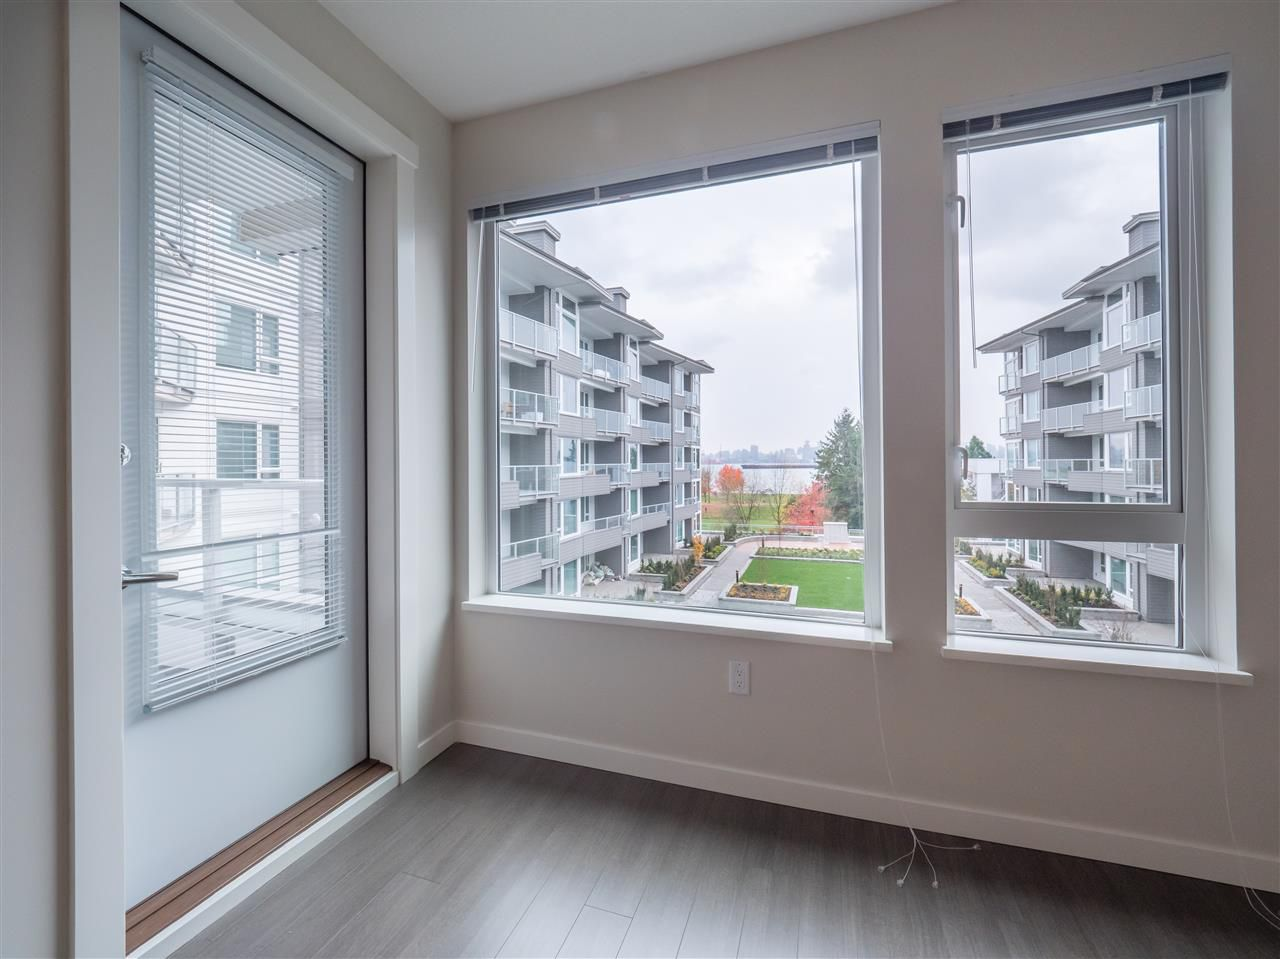 Main Photo: 301 255 W 1ST Street in North Vancouver: Lower Lonsdale Condo for sale : MLS®# R2221010